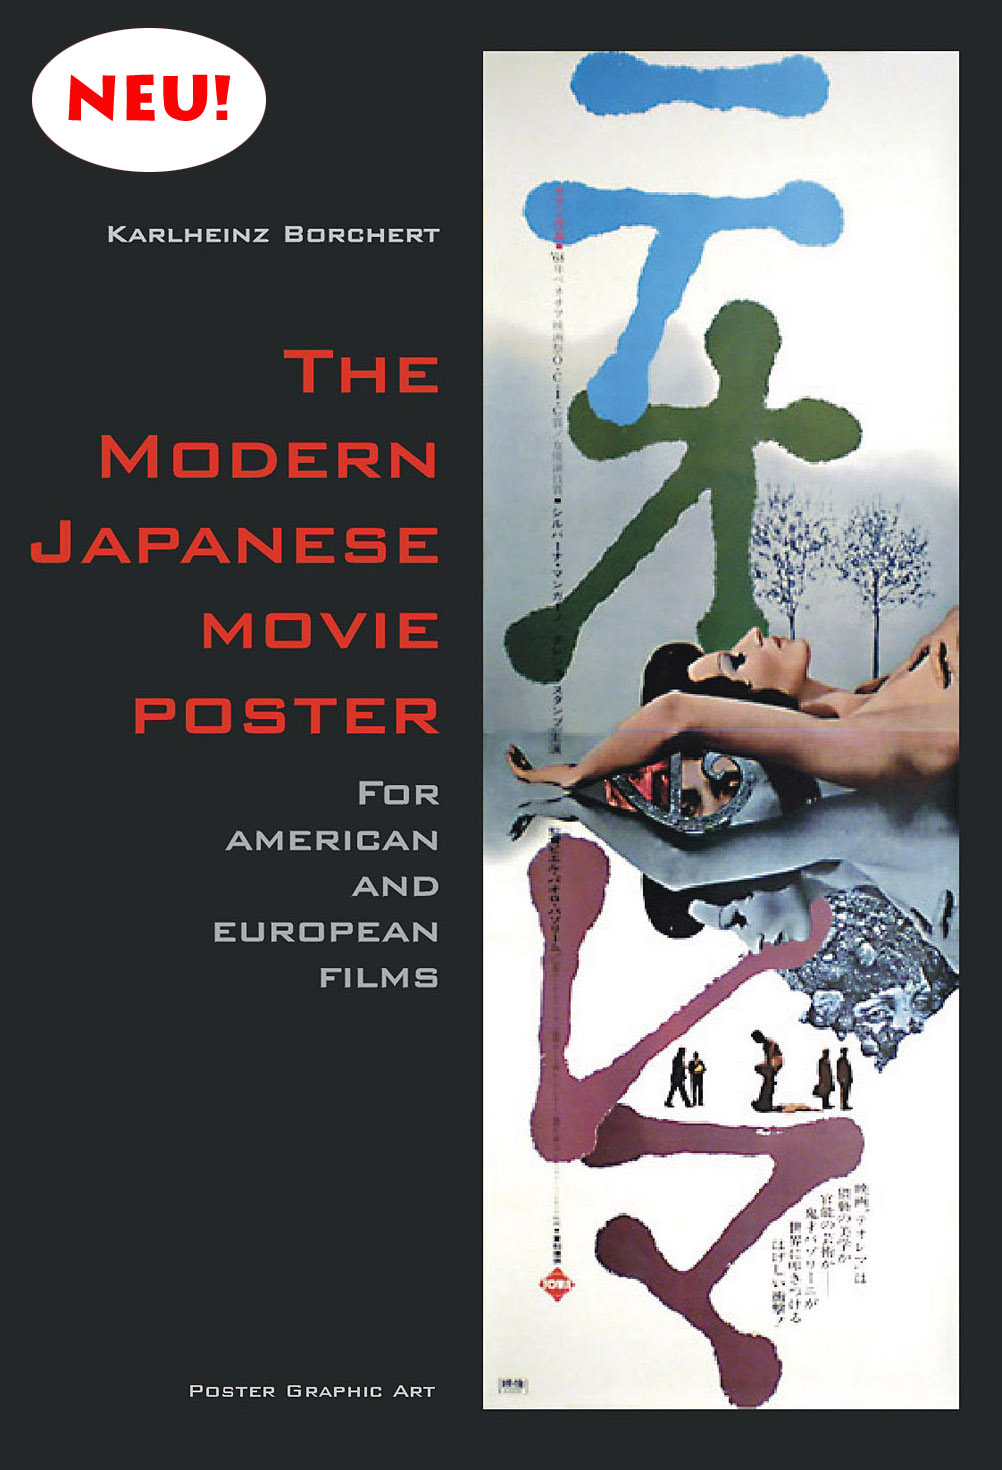 The Modern Japanese Movie Poster